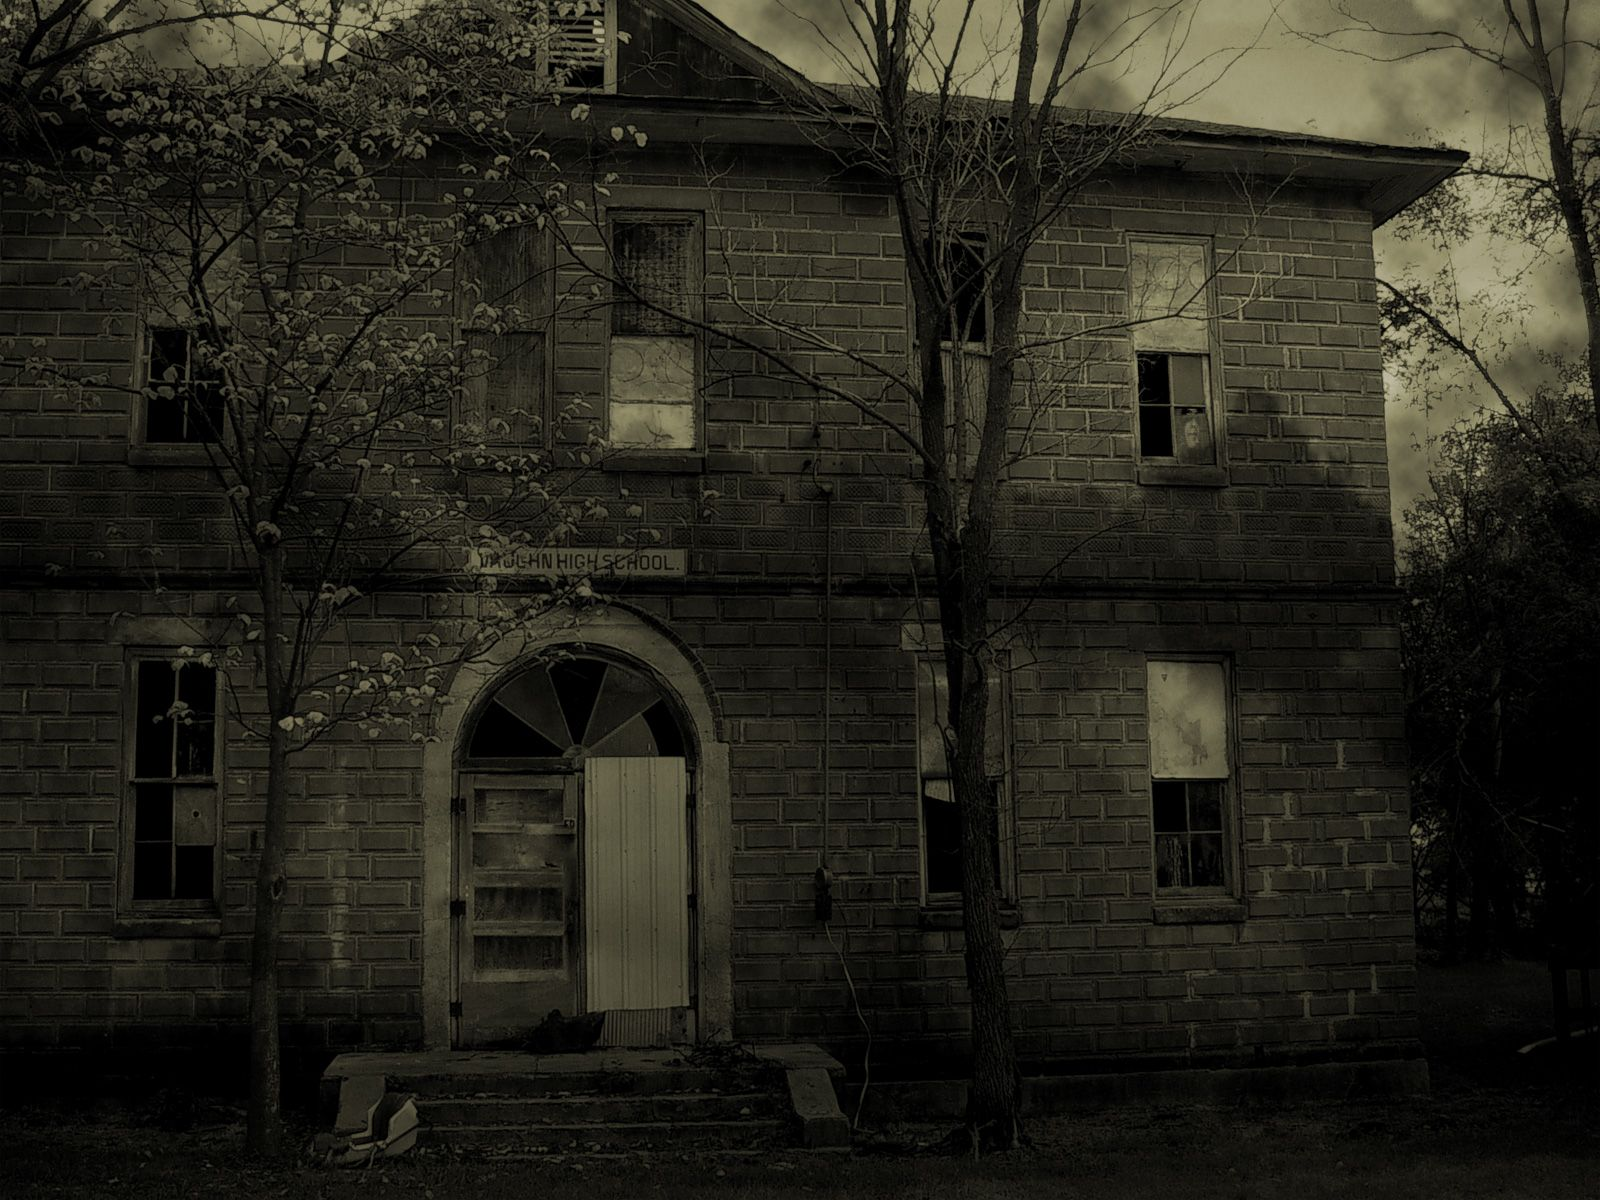 haunted 210 best Haunted places that might be cool to visit! Hehehe images on  Pinterest | Abandoned places, Haunted places and Haunted houses